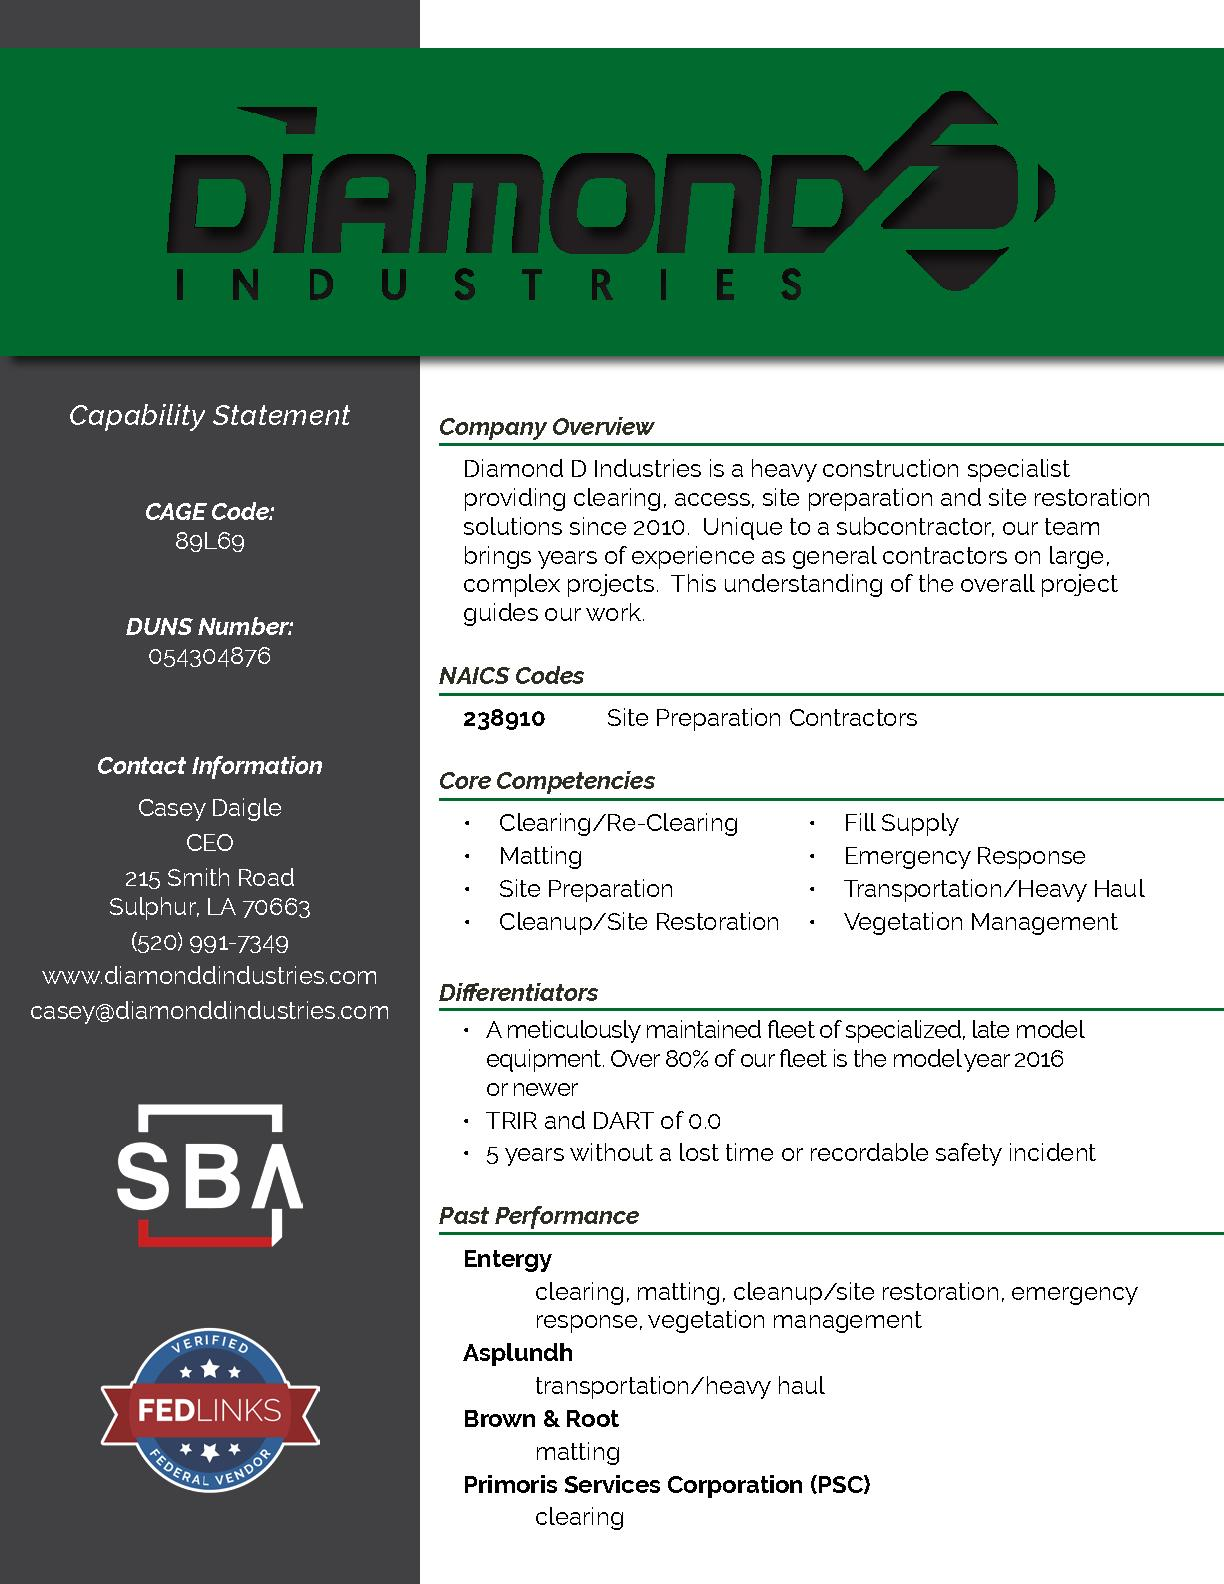 Diamonddindustries capabilitystatement